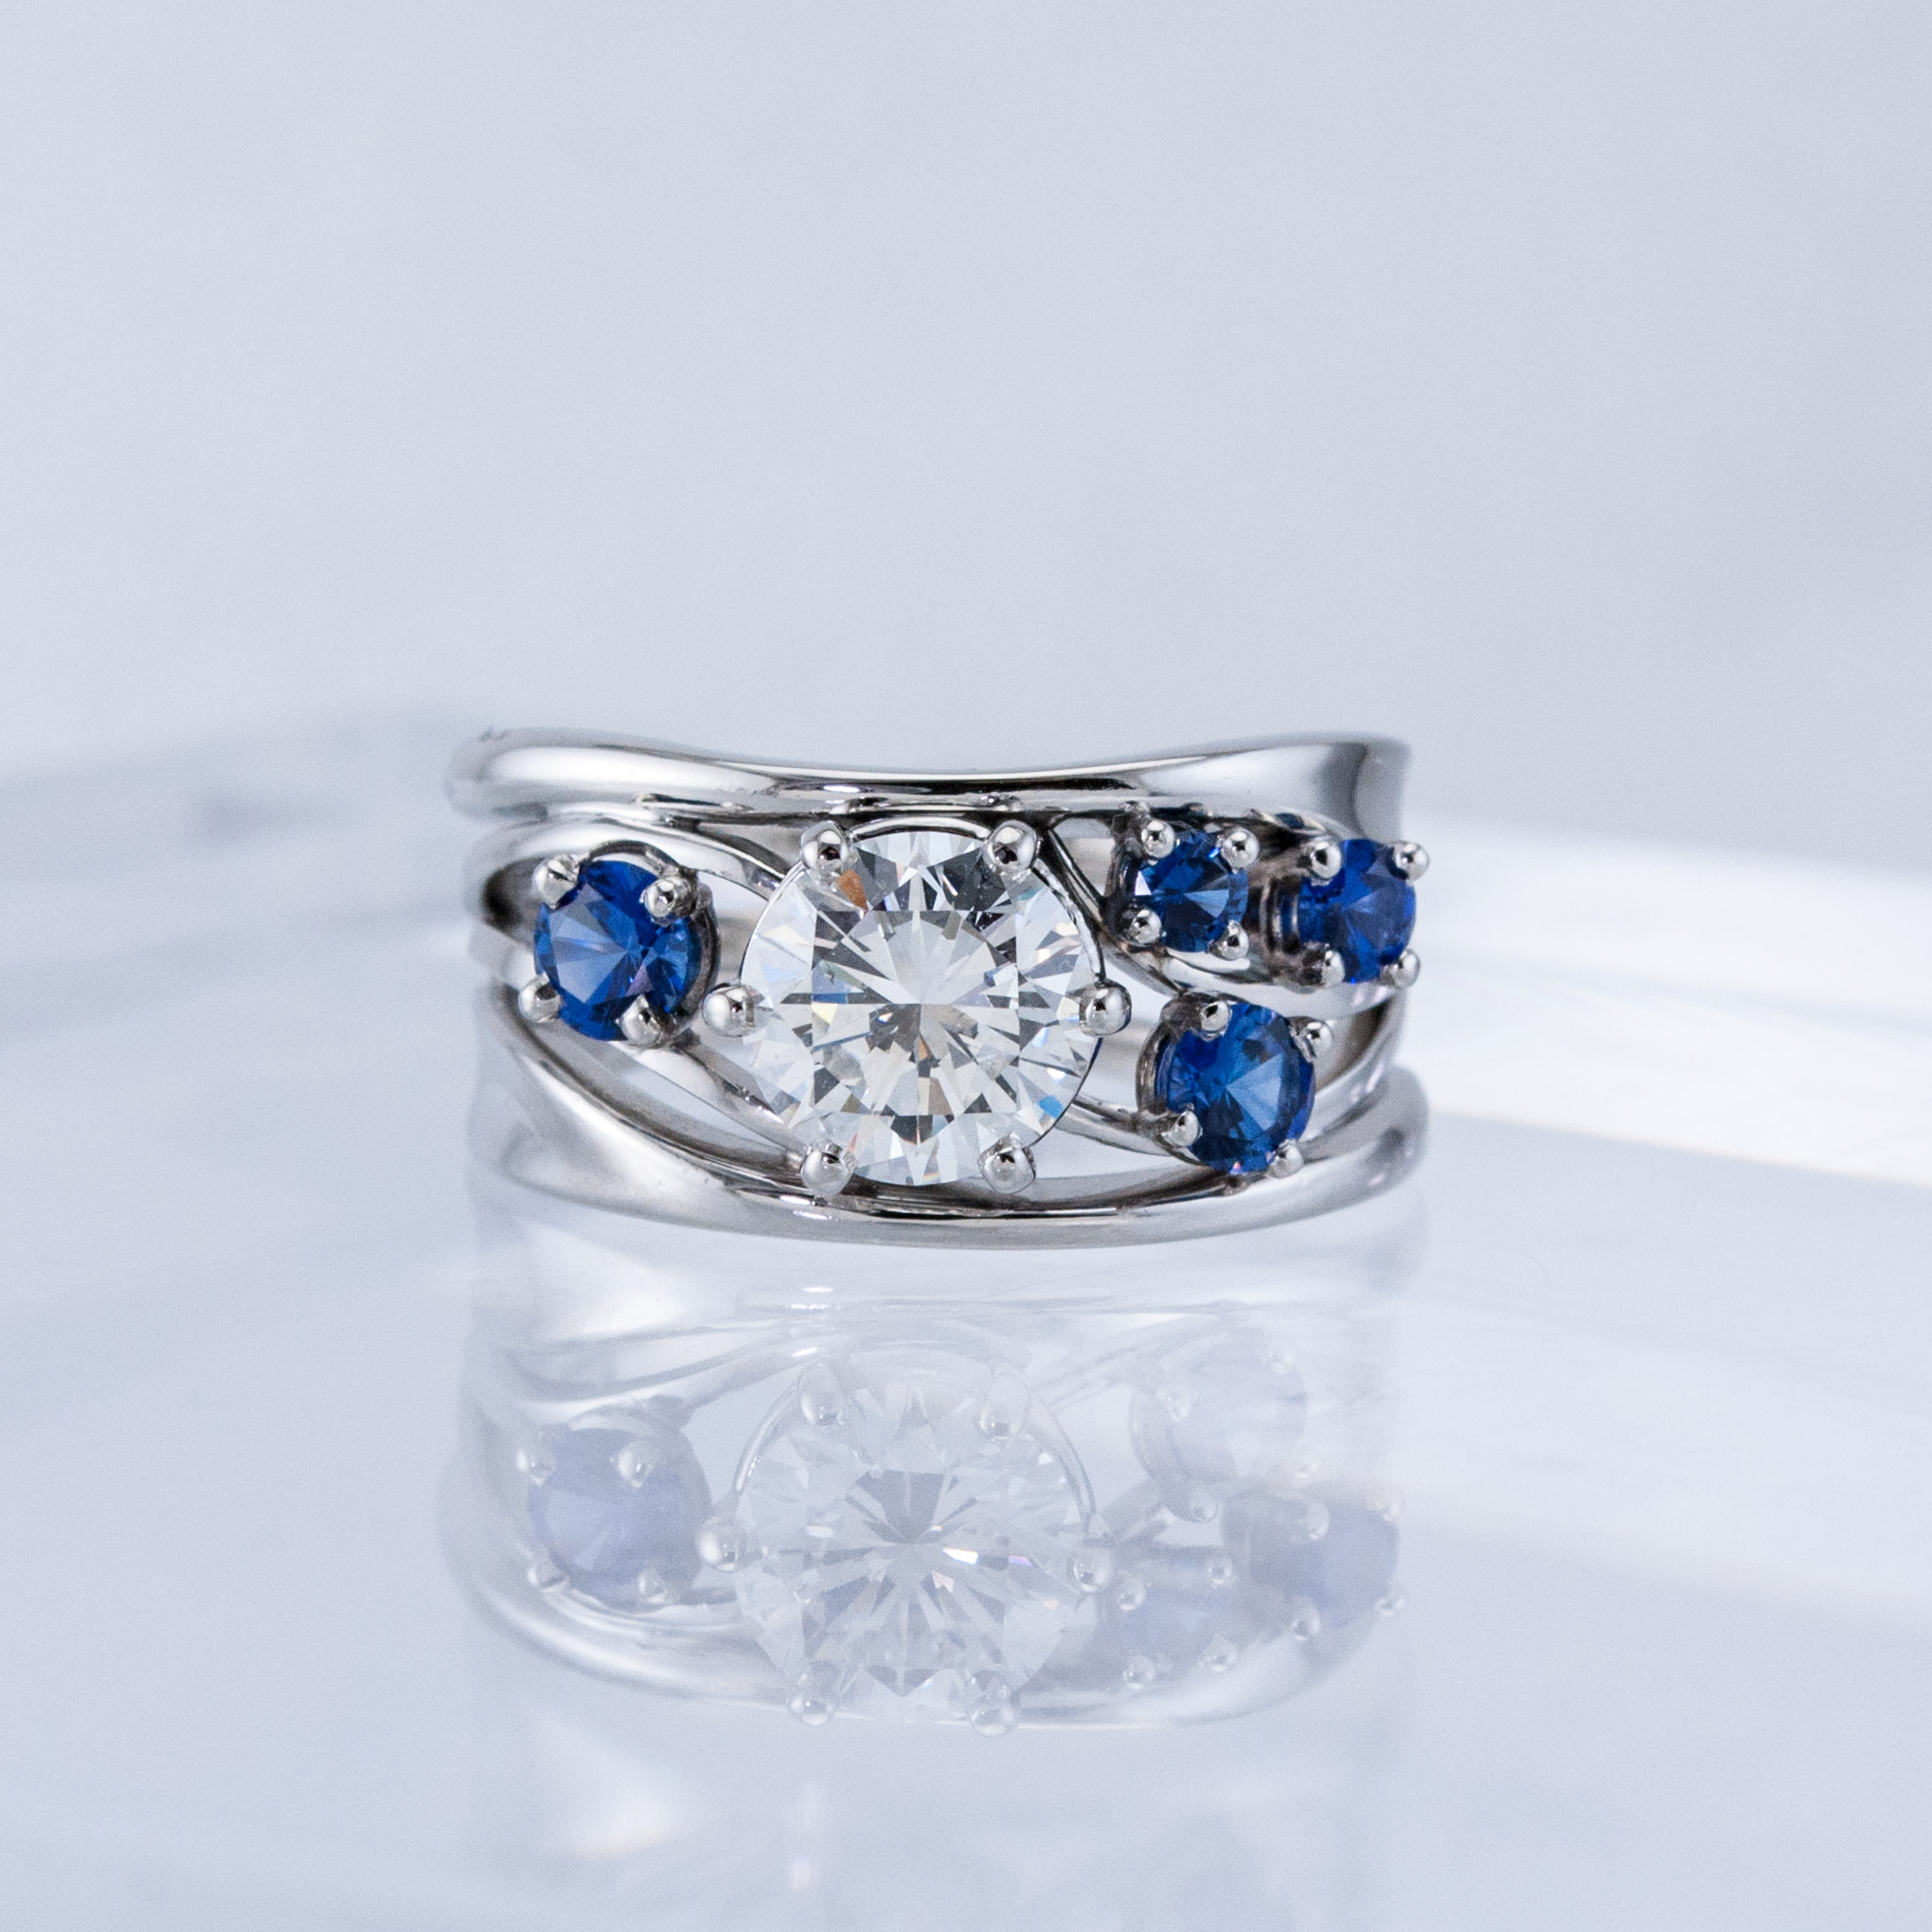 Constellation Ring with Diamond and Sapphires